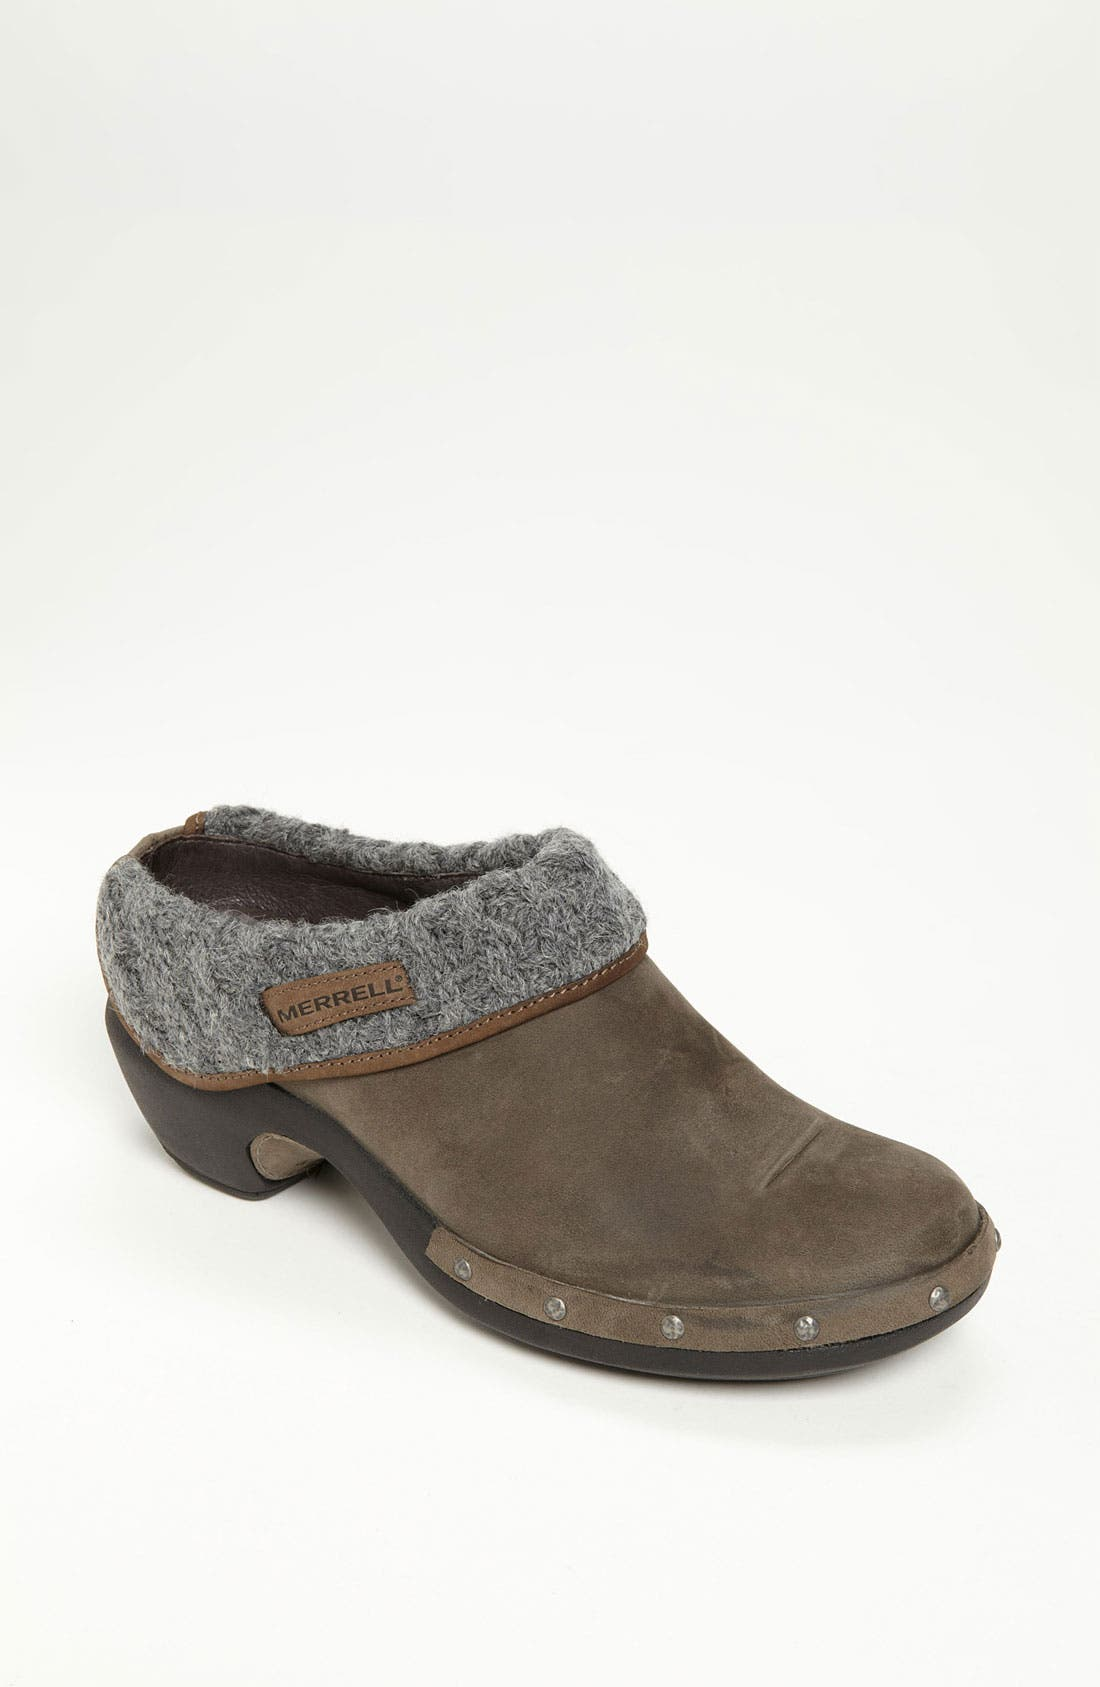 Alternate Image 1 Selected - Merrell 'Luxe Knit' Clog